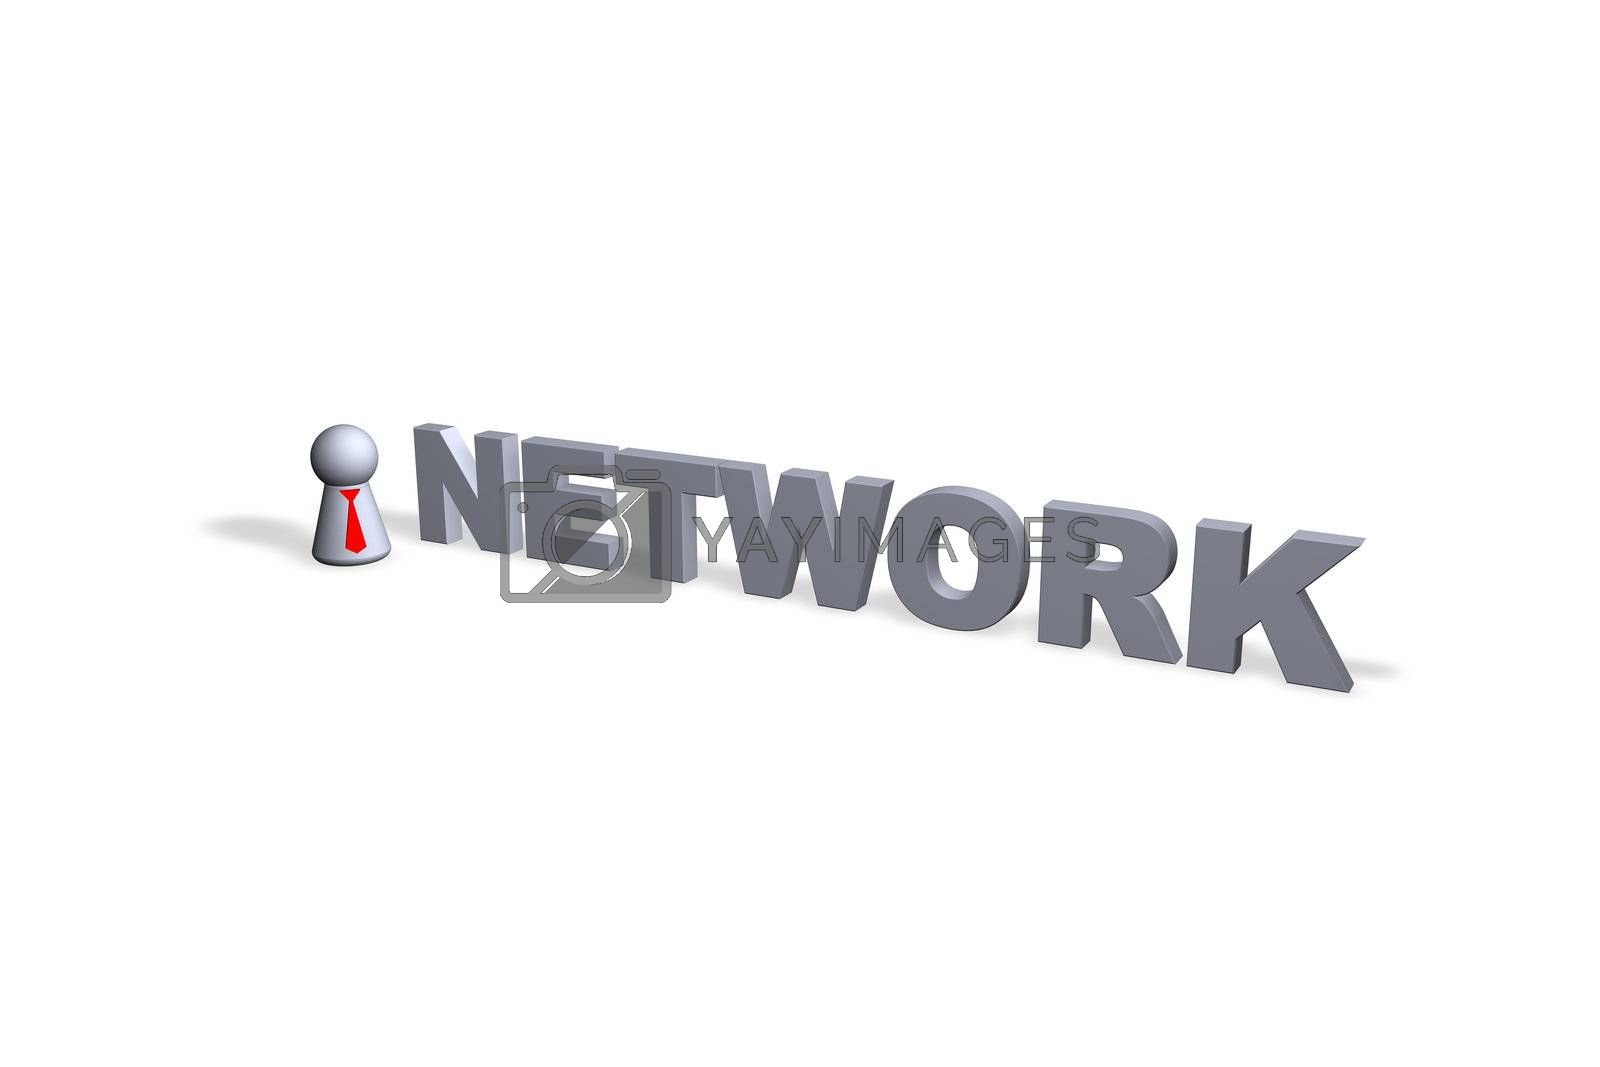 network text in 3d and play figure with red tie